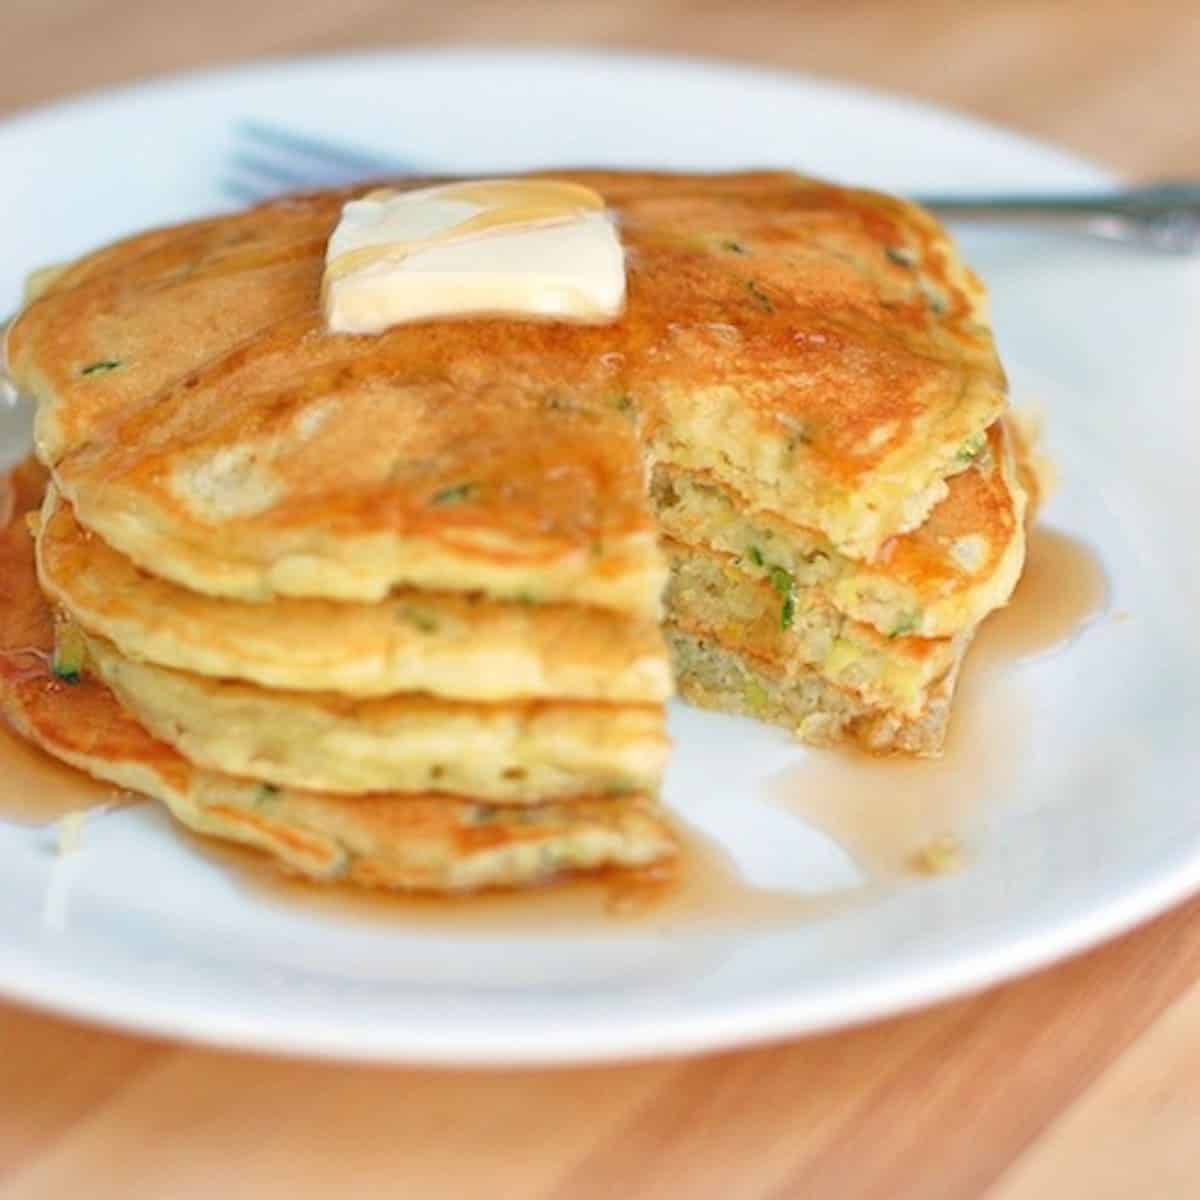 These zucchini pancakes are the perfect sweet breakfast! Easy to make, light and fluffy, and full of garden fresh zucchini. | pinchofyum.com